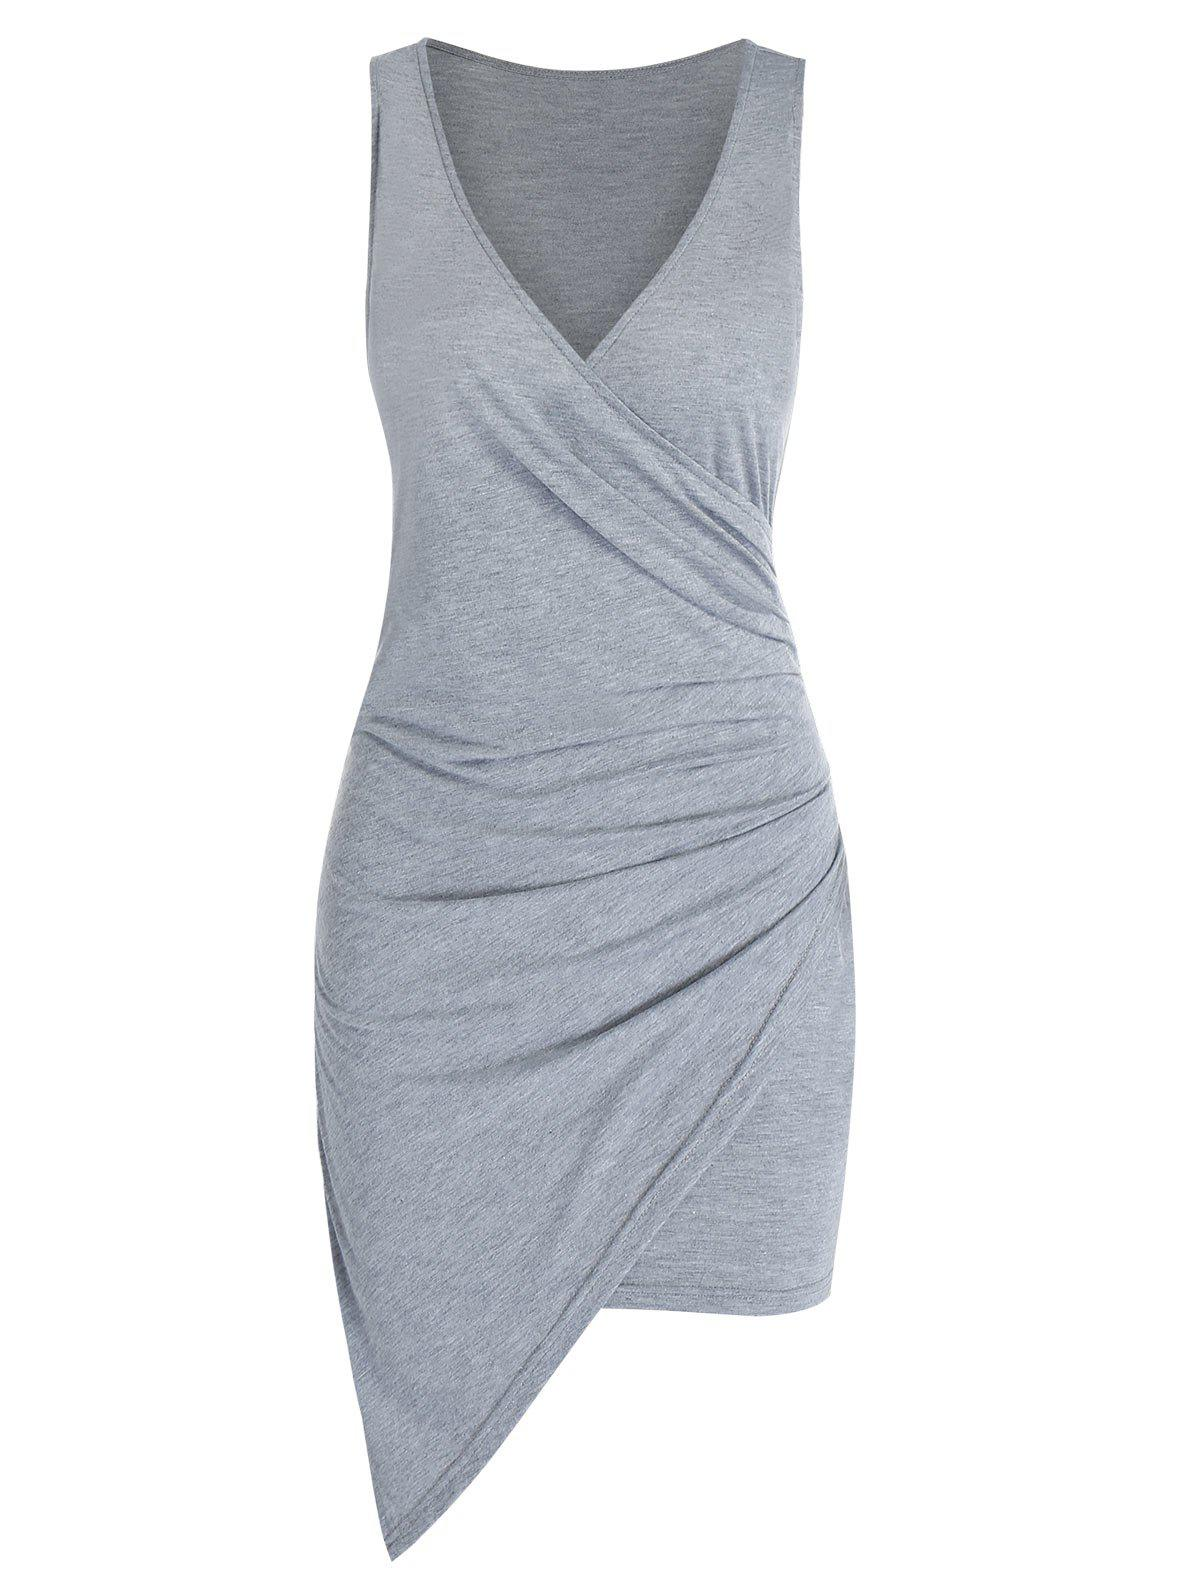 Sleeveless Asymmetric Surplice Sheath Dress - LIGHT GRAY M